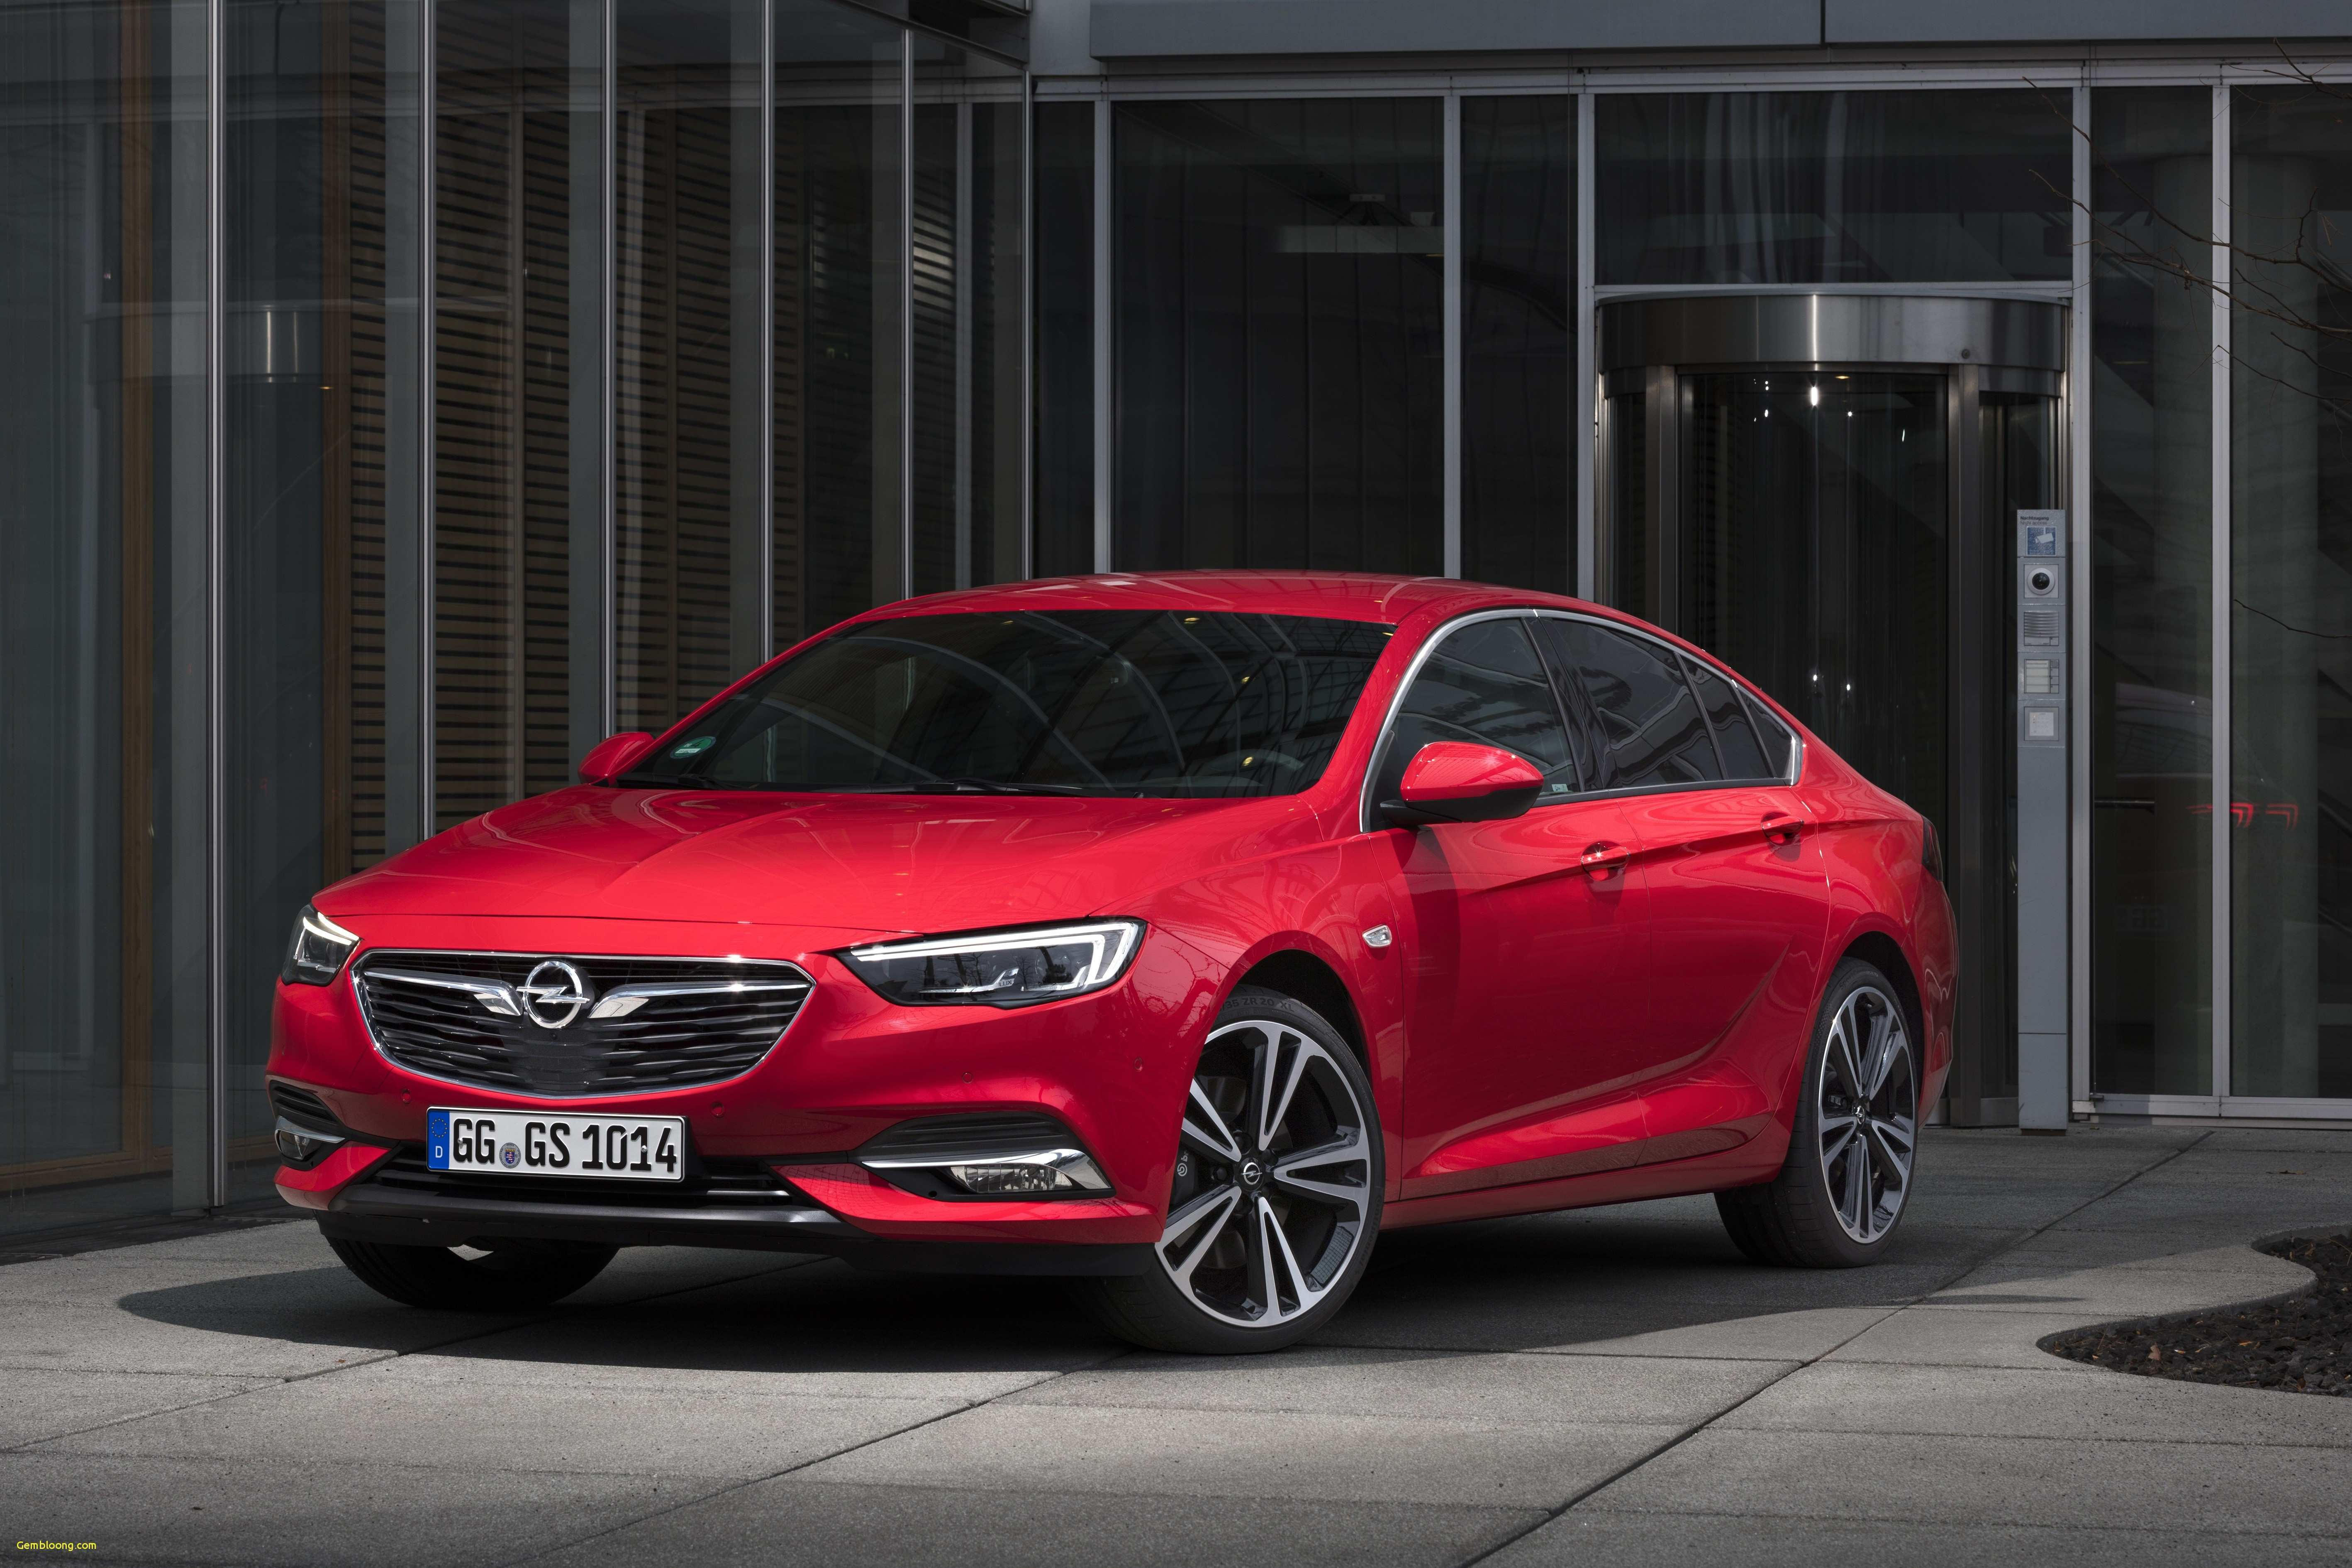 55 The 2020 Opel Astra 2020 Wallpaper for 2020 Opel Astra 2020